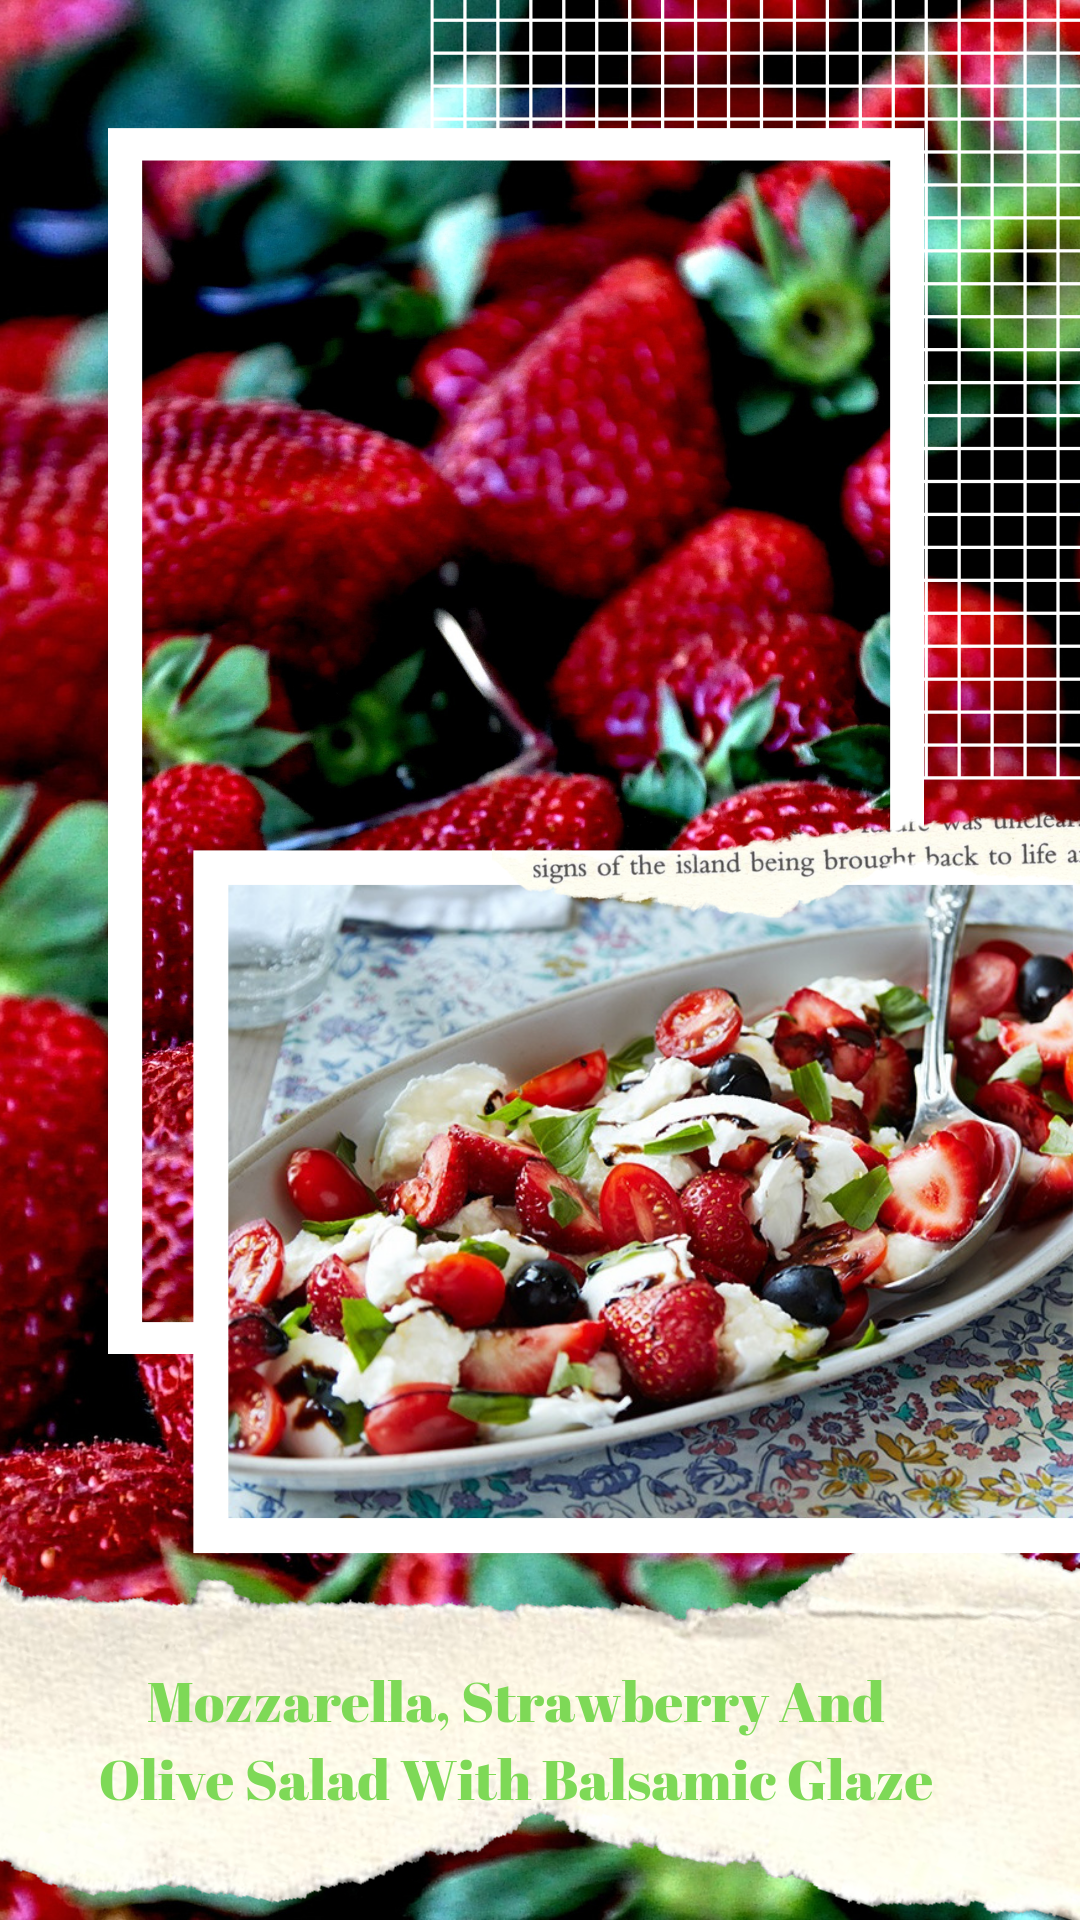 Mozzarella, Strawberry And Olive Salad With Balsamic Glaze